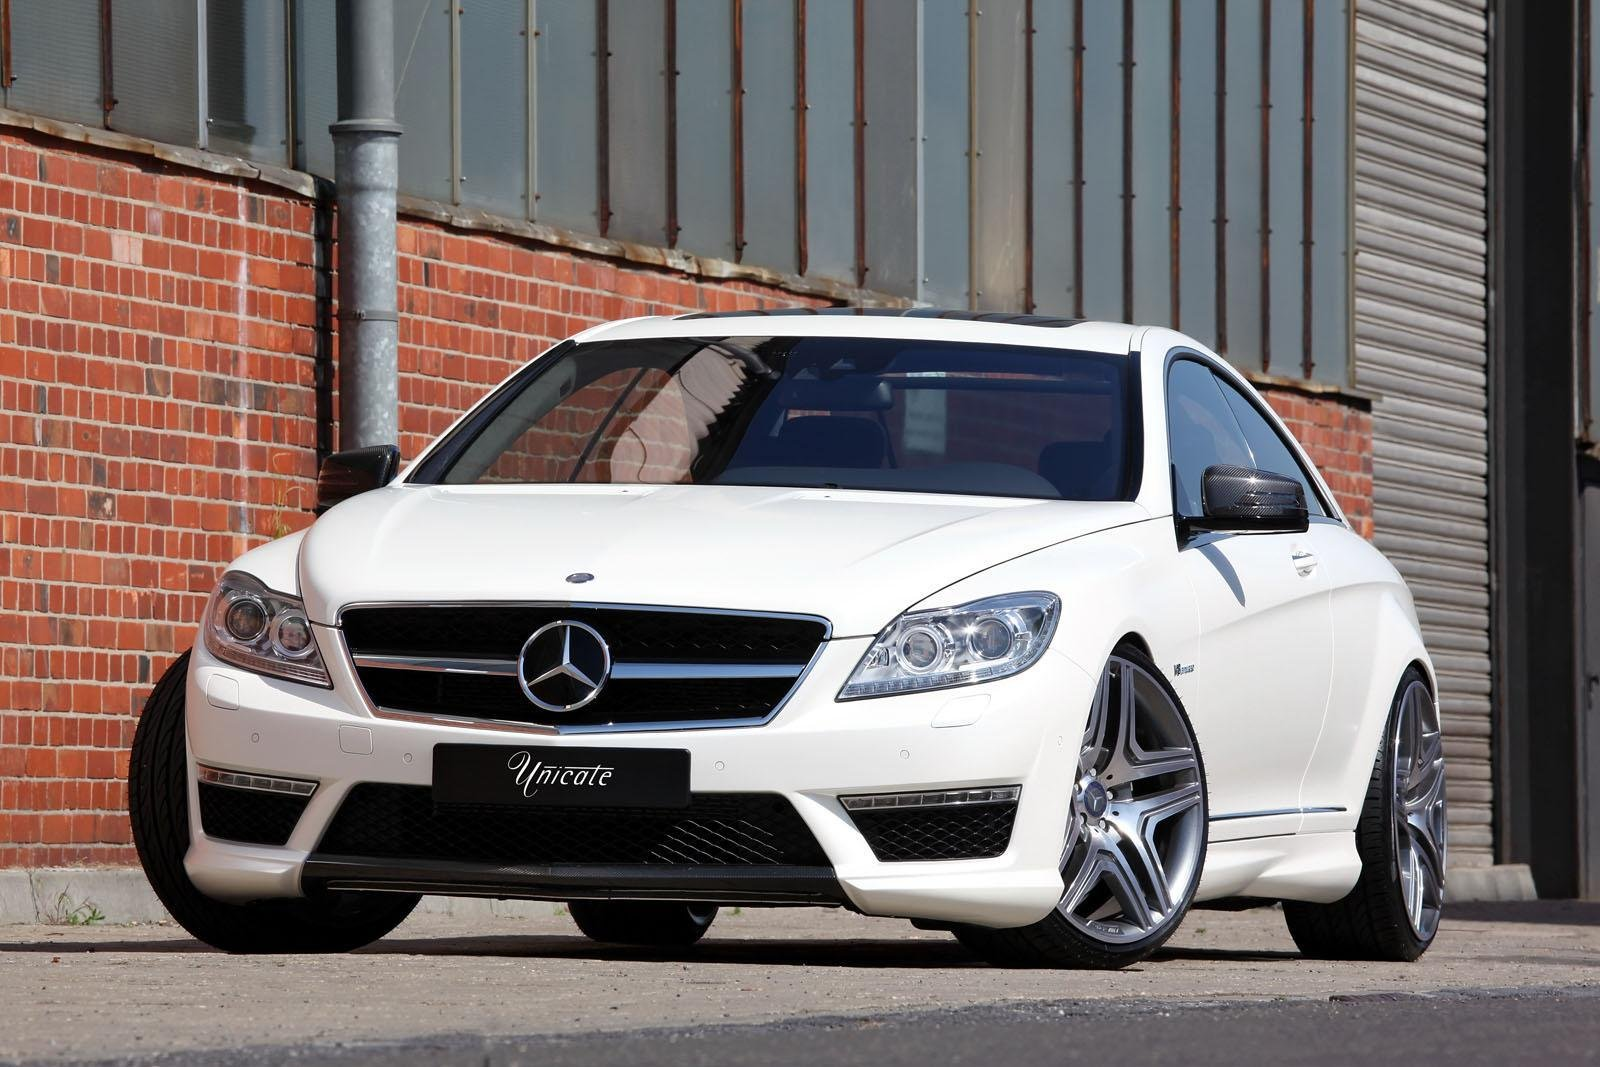 2013 mercedes cl63 amg by unicate germany review top speed. Black Bedroom Furniture Sets. Home Design Ideas